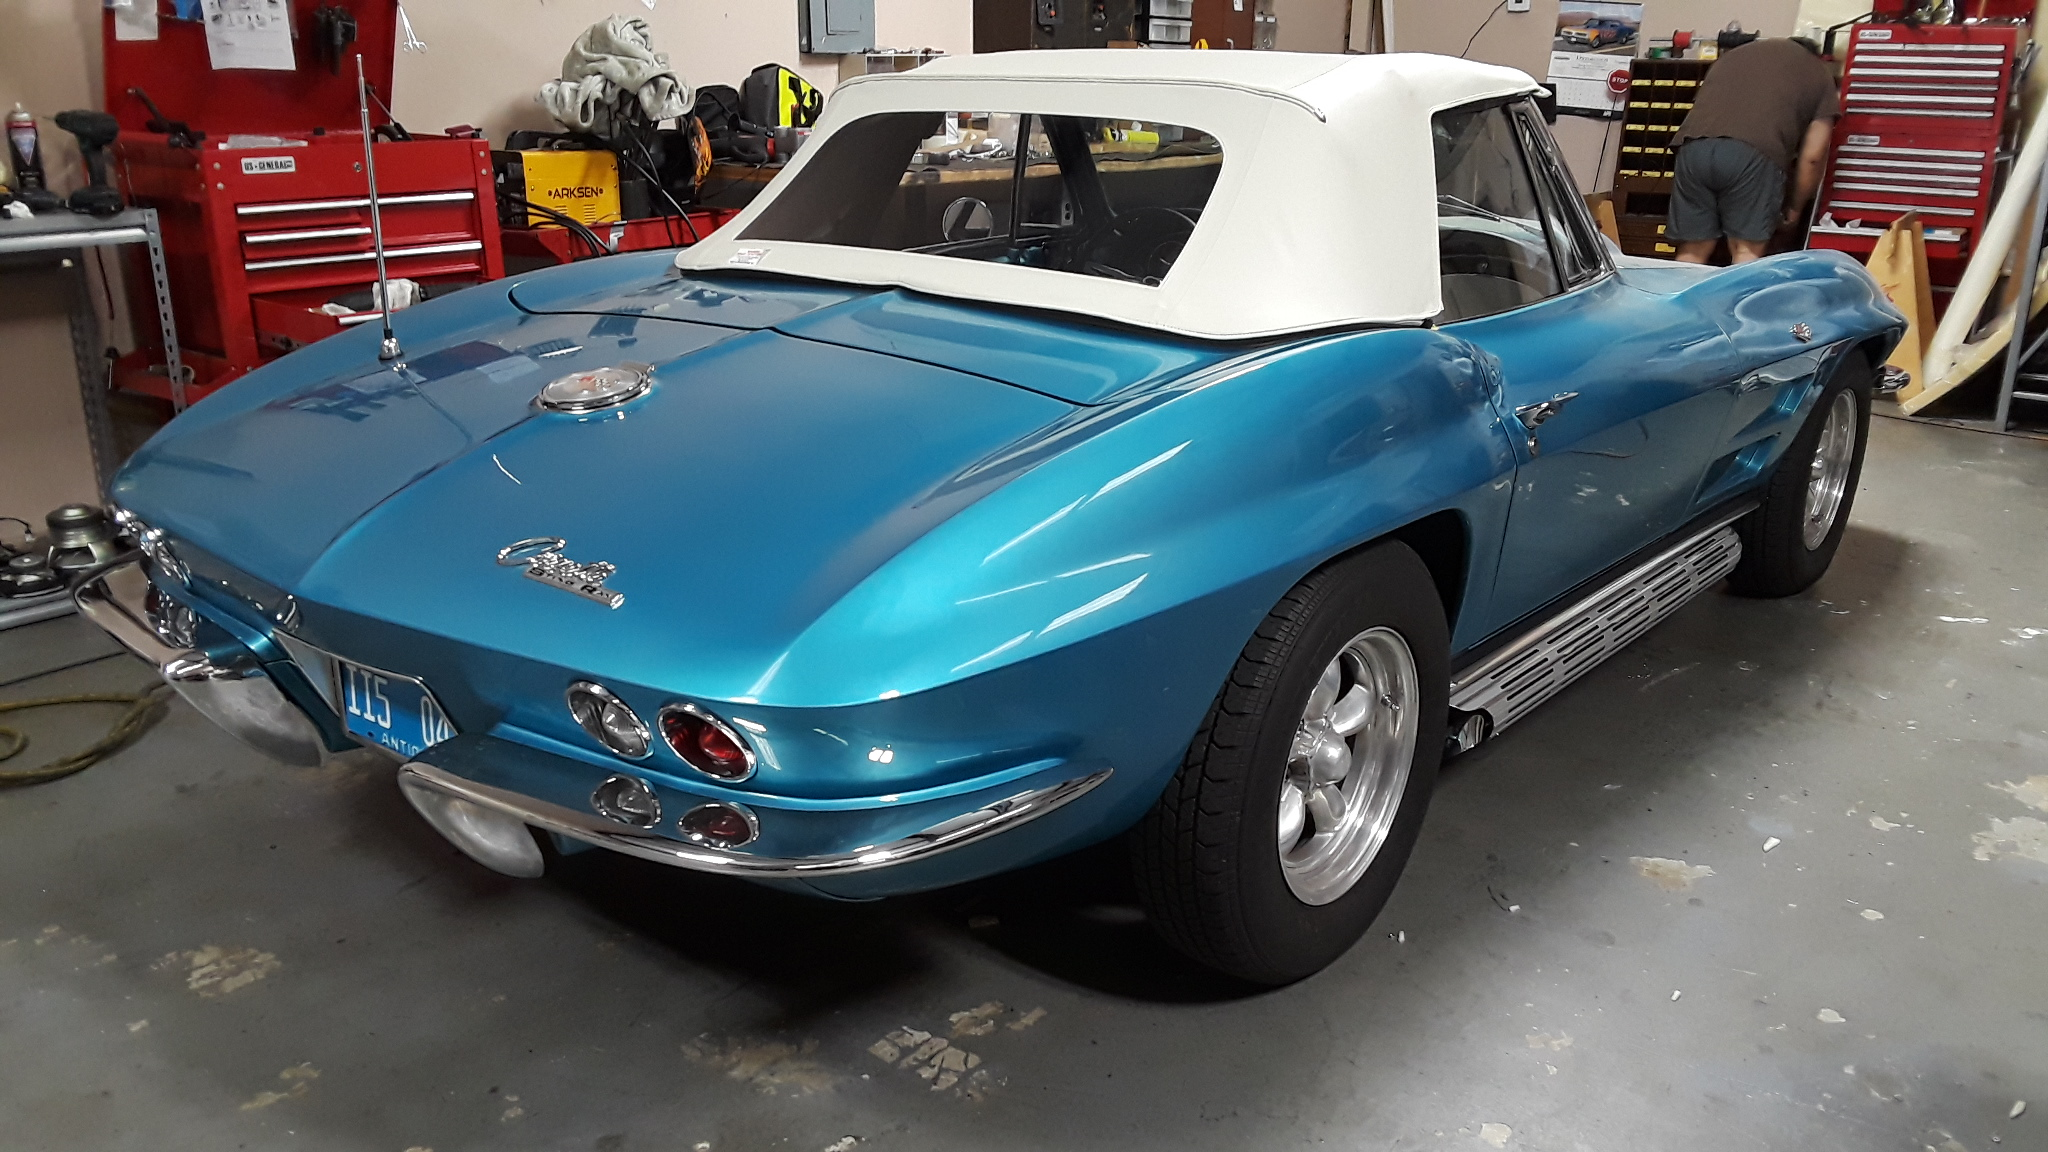 Convertible-Top Replacement: What Goes Into Rejuvenating The Canvas